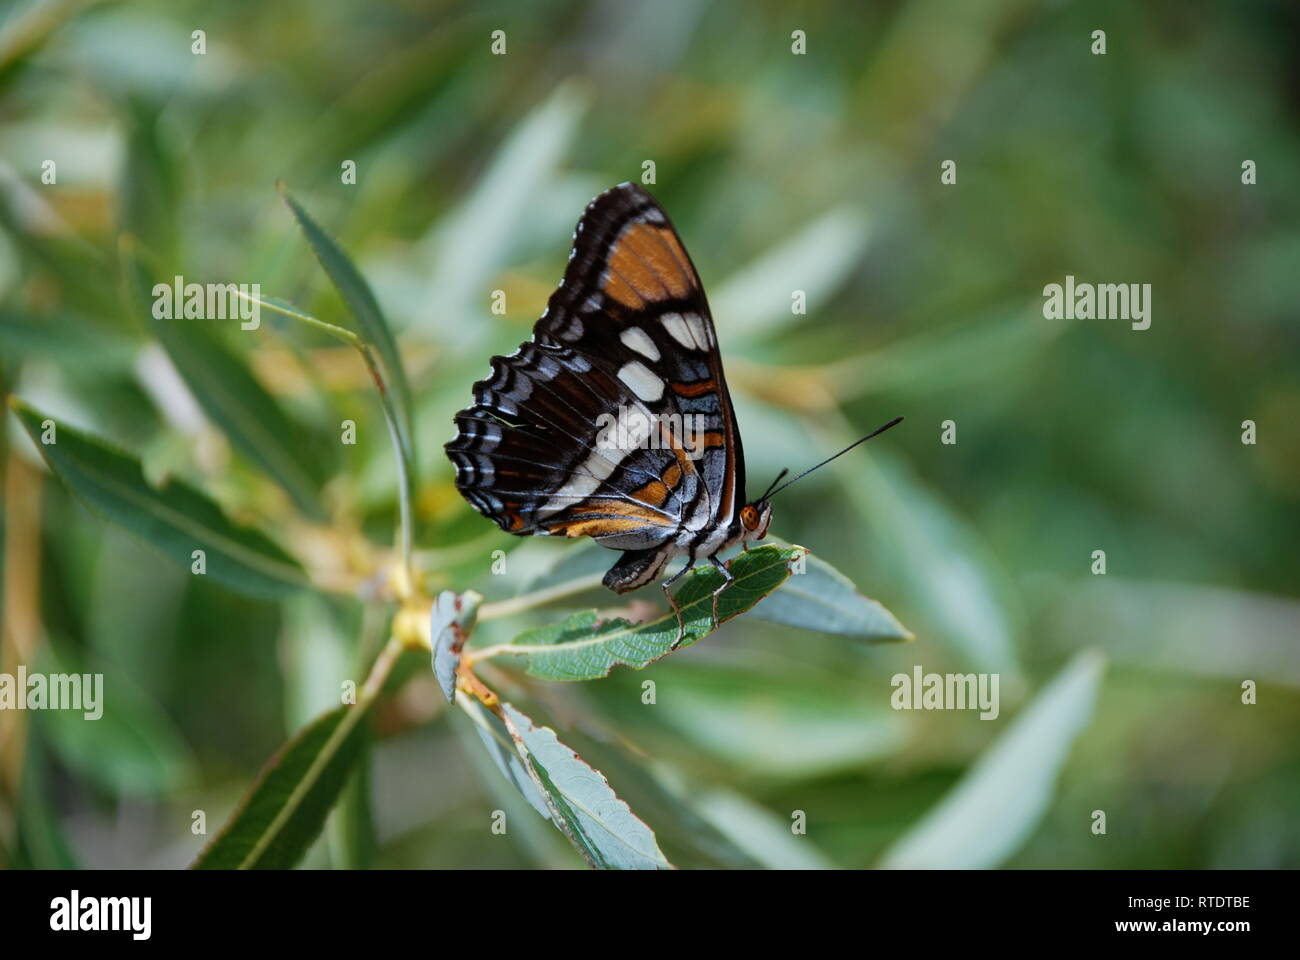 Nymphalid butterfly on greenery in Utah. - Stock Image